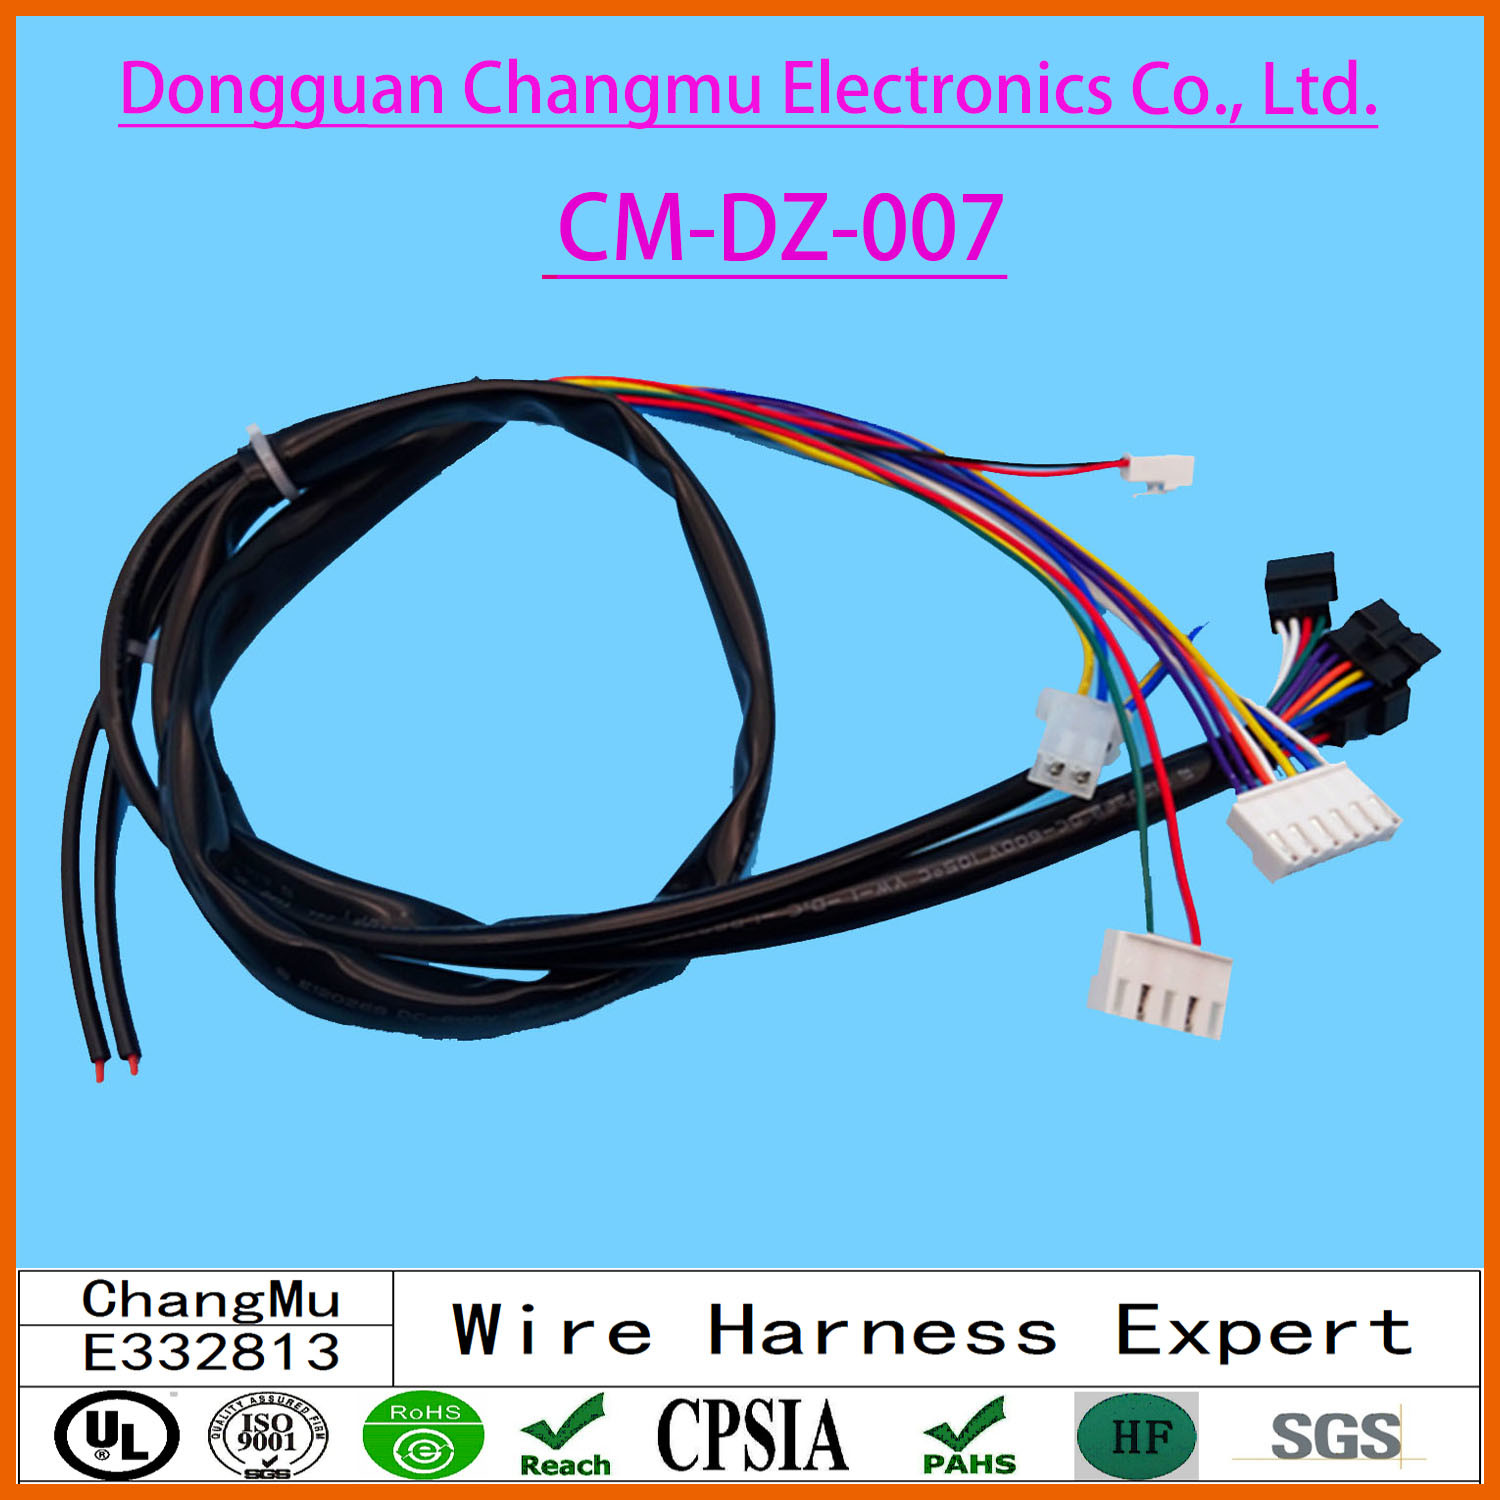 Wholesale Wiring Harness, China Wholesale Wiring Harness ...